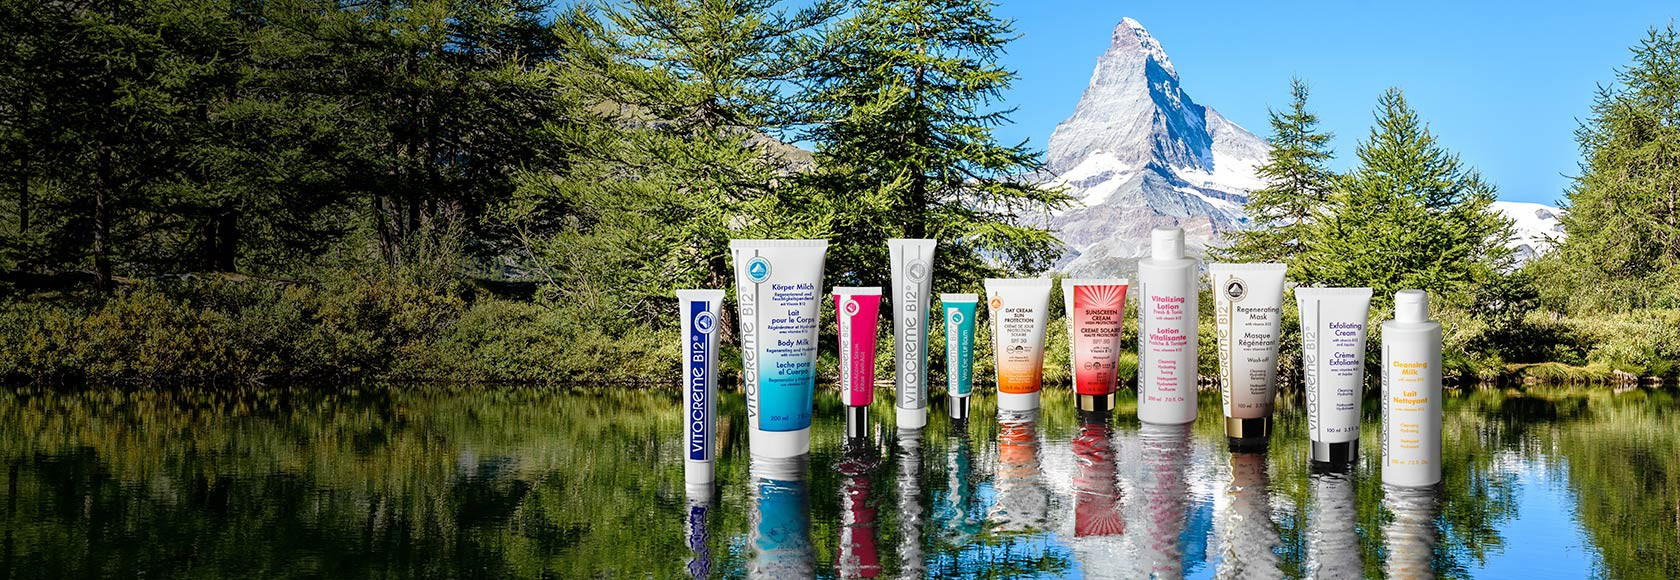 The first vitamin B12 skincare range, designed and made in Switzerland